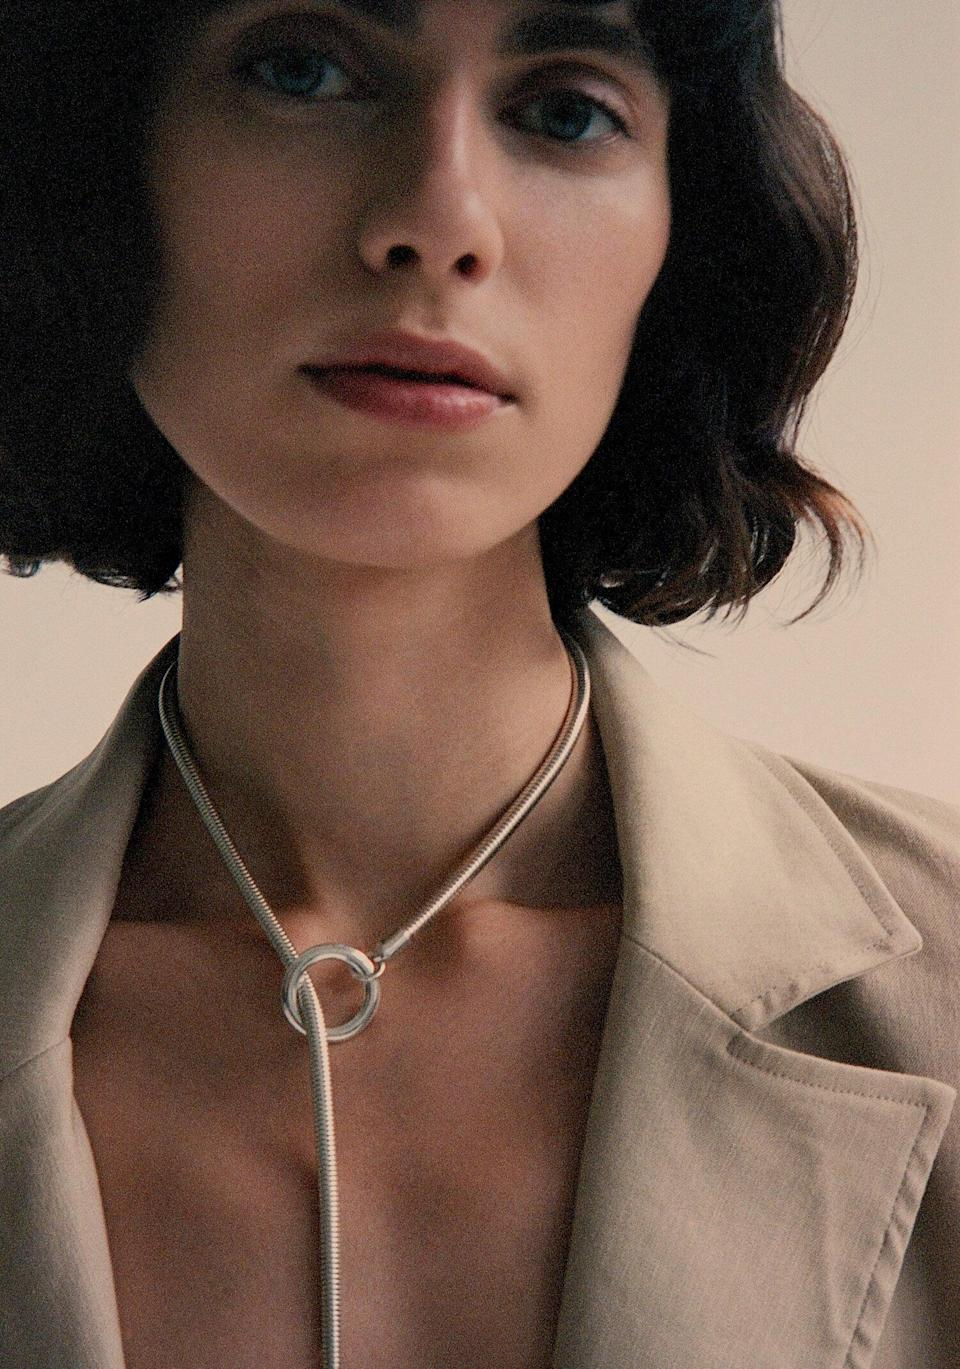 """<strong><h2>Luz Ortiz</h2></strong>Dominican-born designer Luz Ortiz creates accessories mixing her Caribbean upbringing and the modern, industrial, and organic shapes that surround her in New York City, where she lives. Each piece is handcrafted in Ortiz's studio using precious metals and natural stones. <br><br><em>Shop <a href=""""https://www.luzortiznewyork.com/"""" rel=""""nofollow noopener"""" target=""""_blank"""" data-ylk=""""slk:Luz Ortiz"""" class=""""link rapid-noclick-resp"""">Luz Ortiz</a></em><br>"""